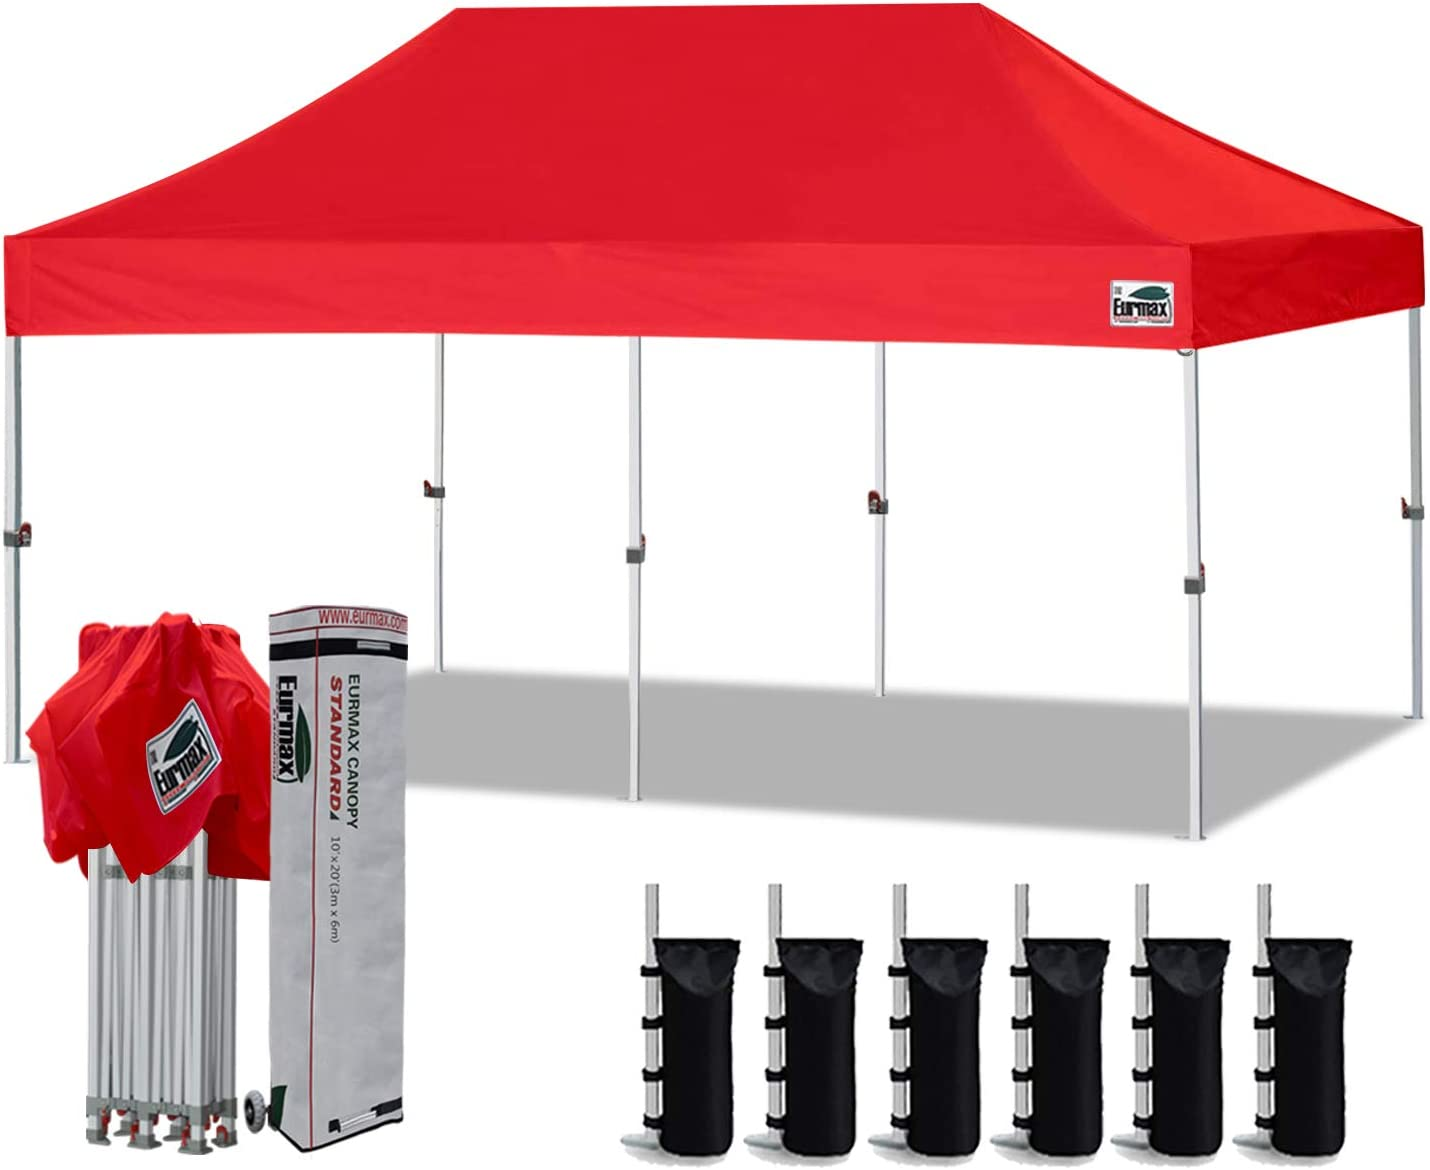 Eurmax 10 x20 Ez Pop Up Canopy Tent Commercial Instant Canopies with Heavy Duty Roller Bag,Bonus 6 Sand Weights Bags Red